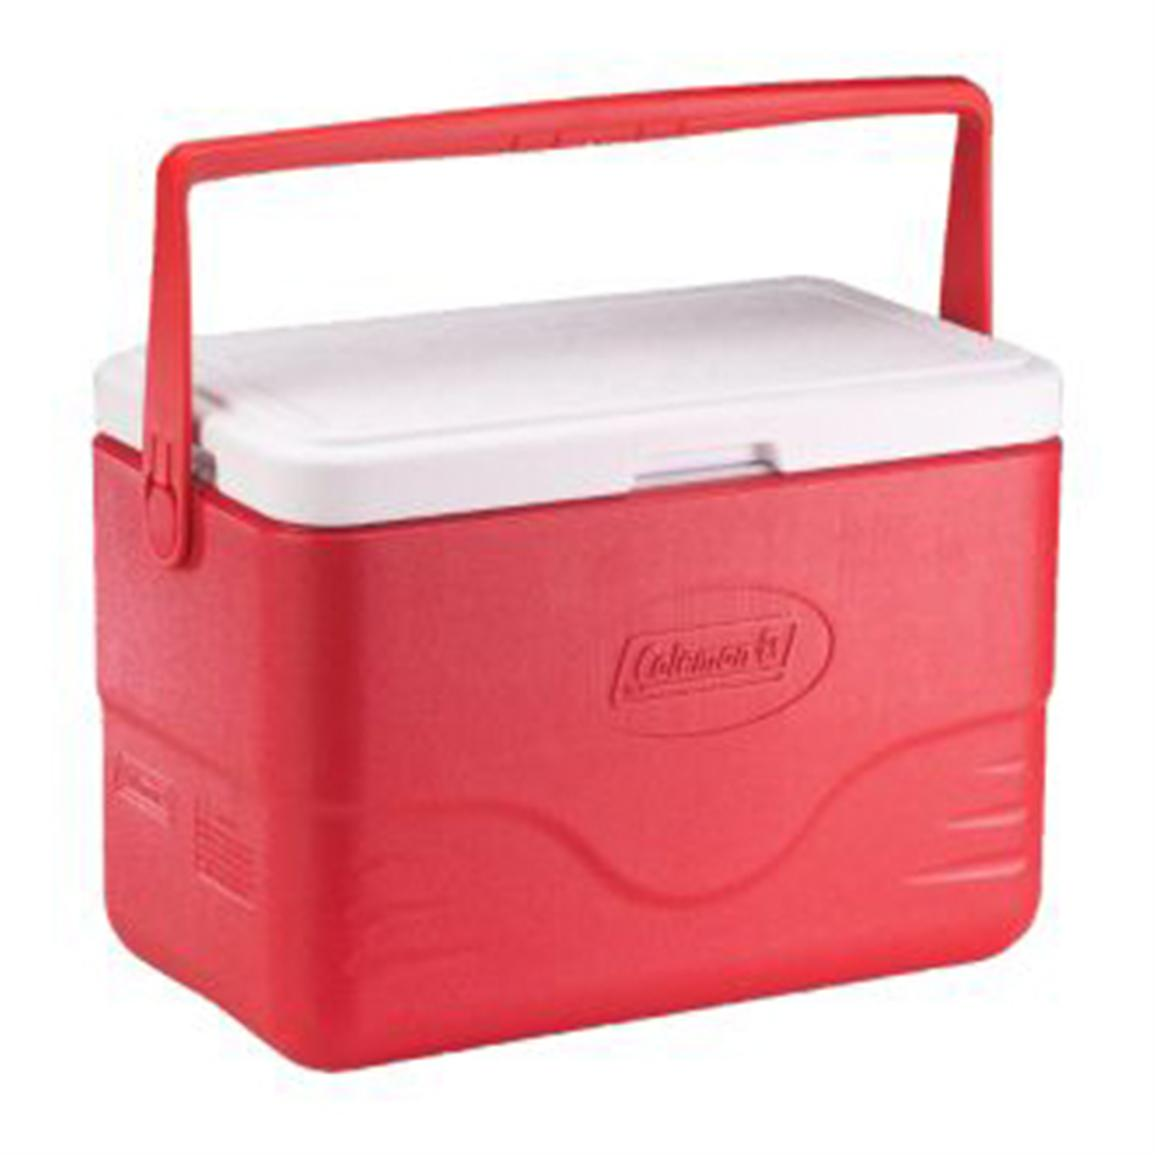 Coleman® 28-quart Red Cooler with Bail Handle